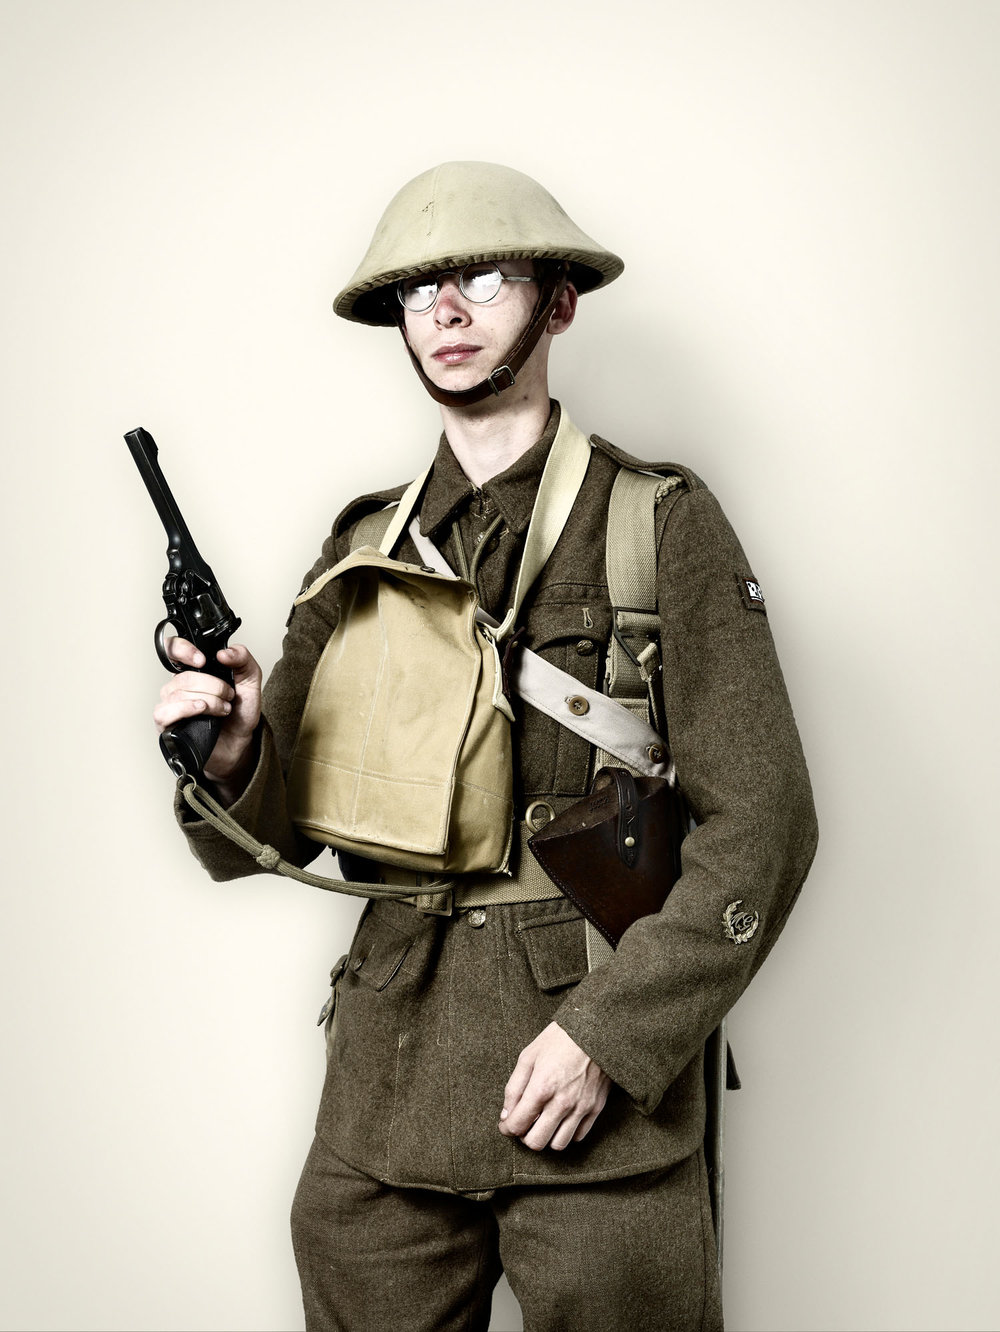 British WWI Soldier (2008)